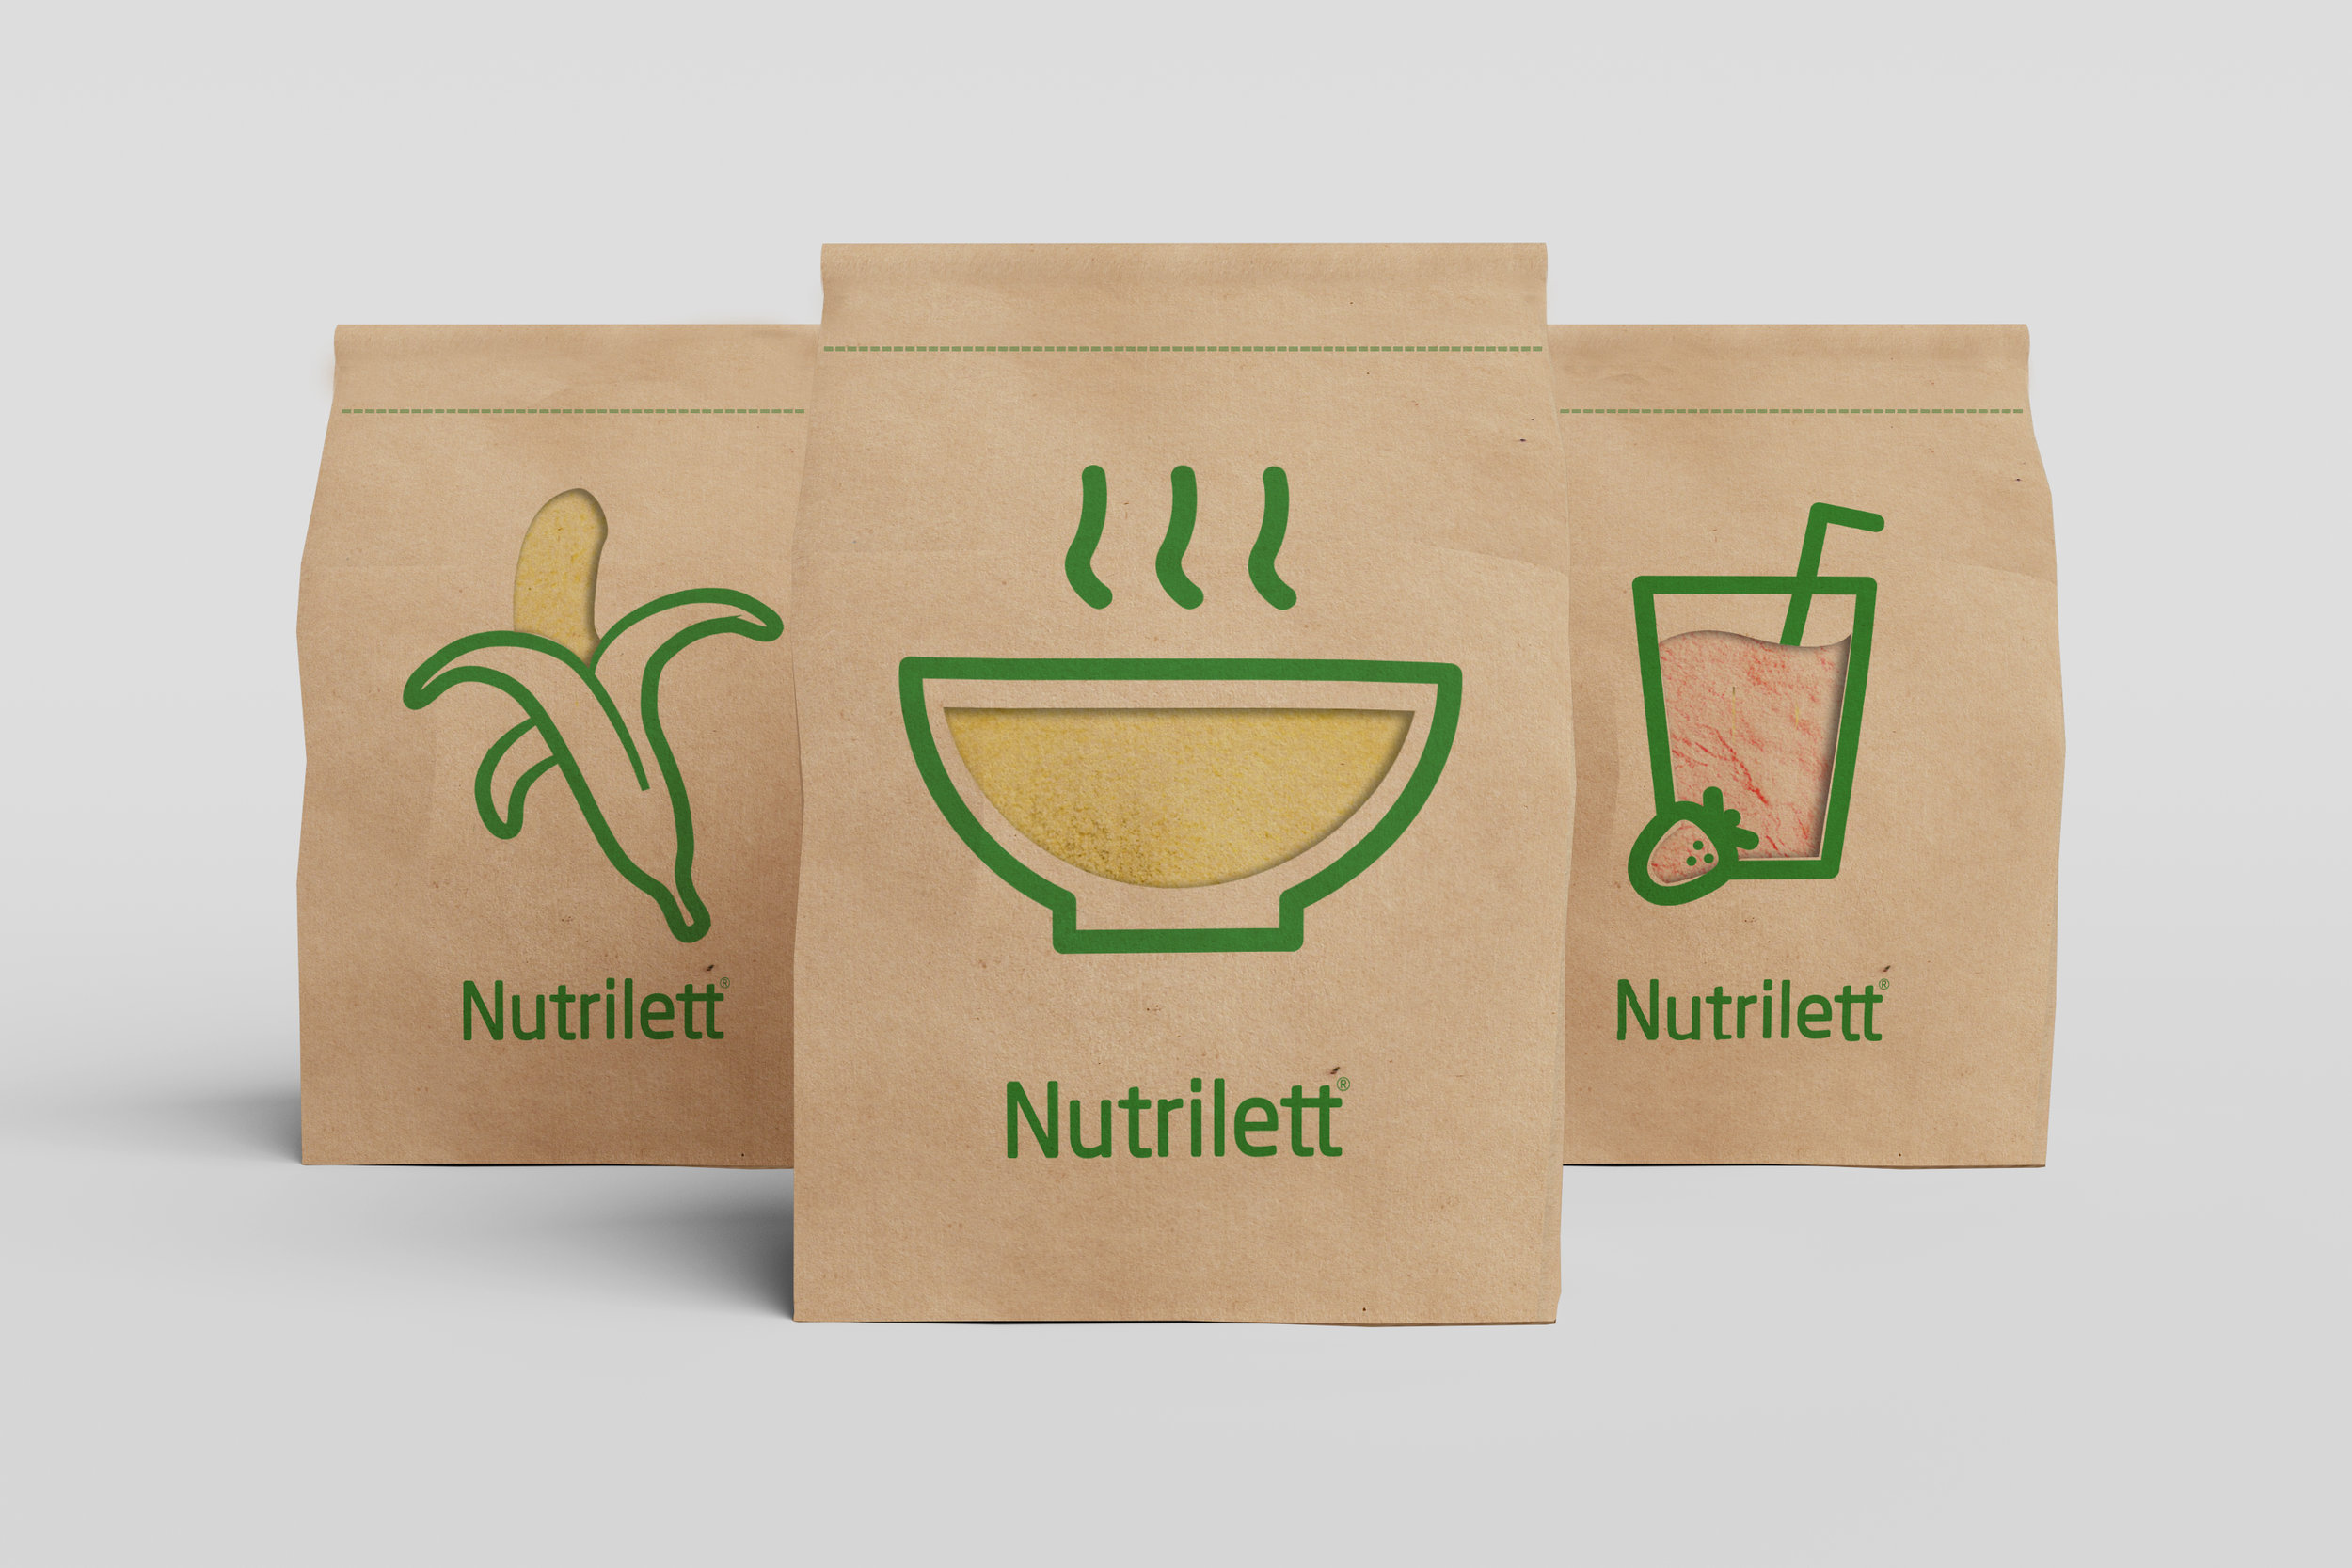 Packaging concept<br><br>- Nutrilett